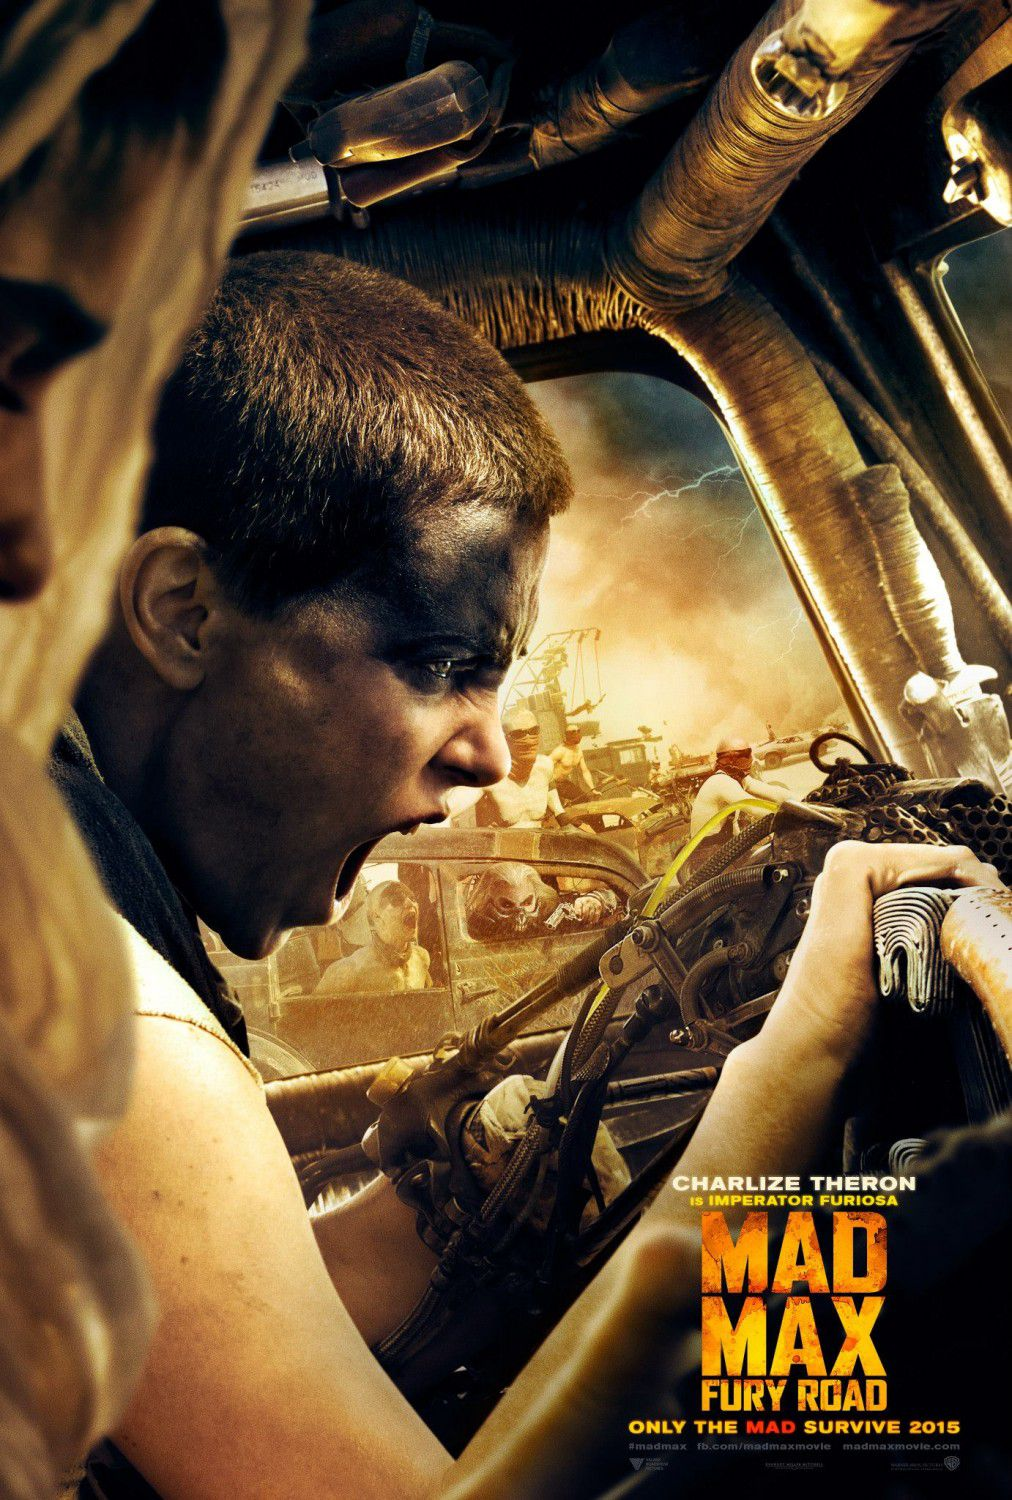 Charlize Theron is Imperador Furiosa